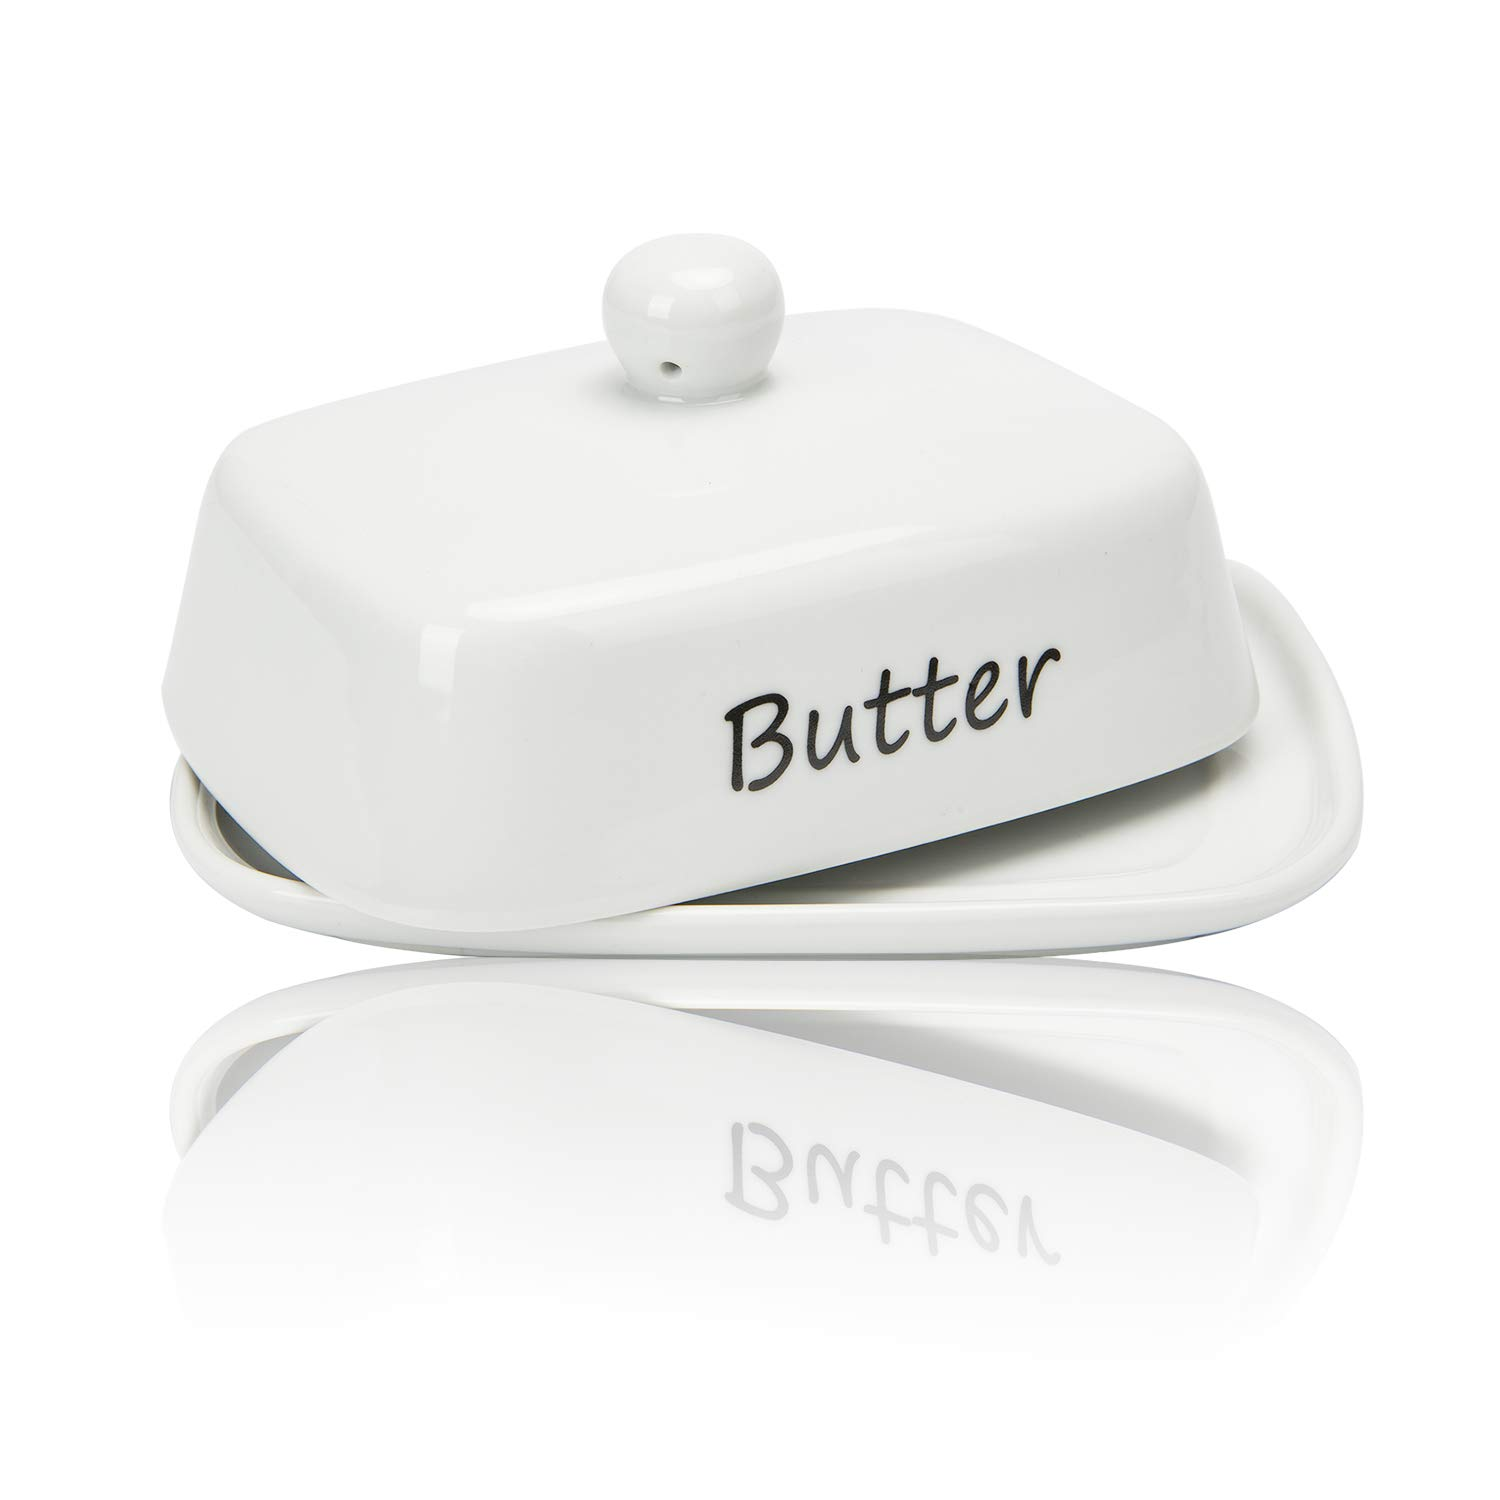 Raveler Butter Dish With Lid, White Porcelain Butter Keeper Suitable for East/West Butter, Butter Container with Cover,Nature Inspired Design